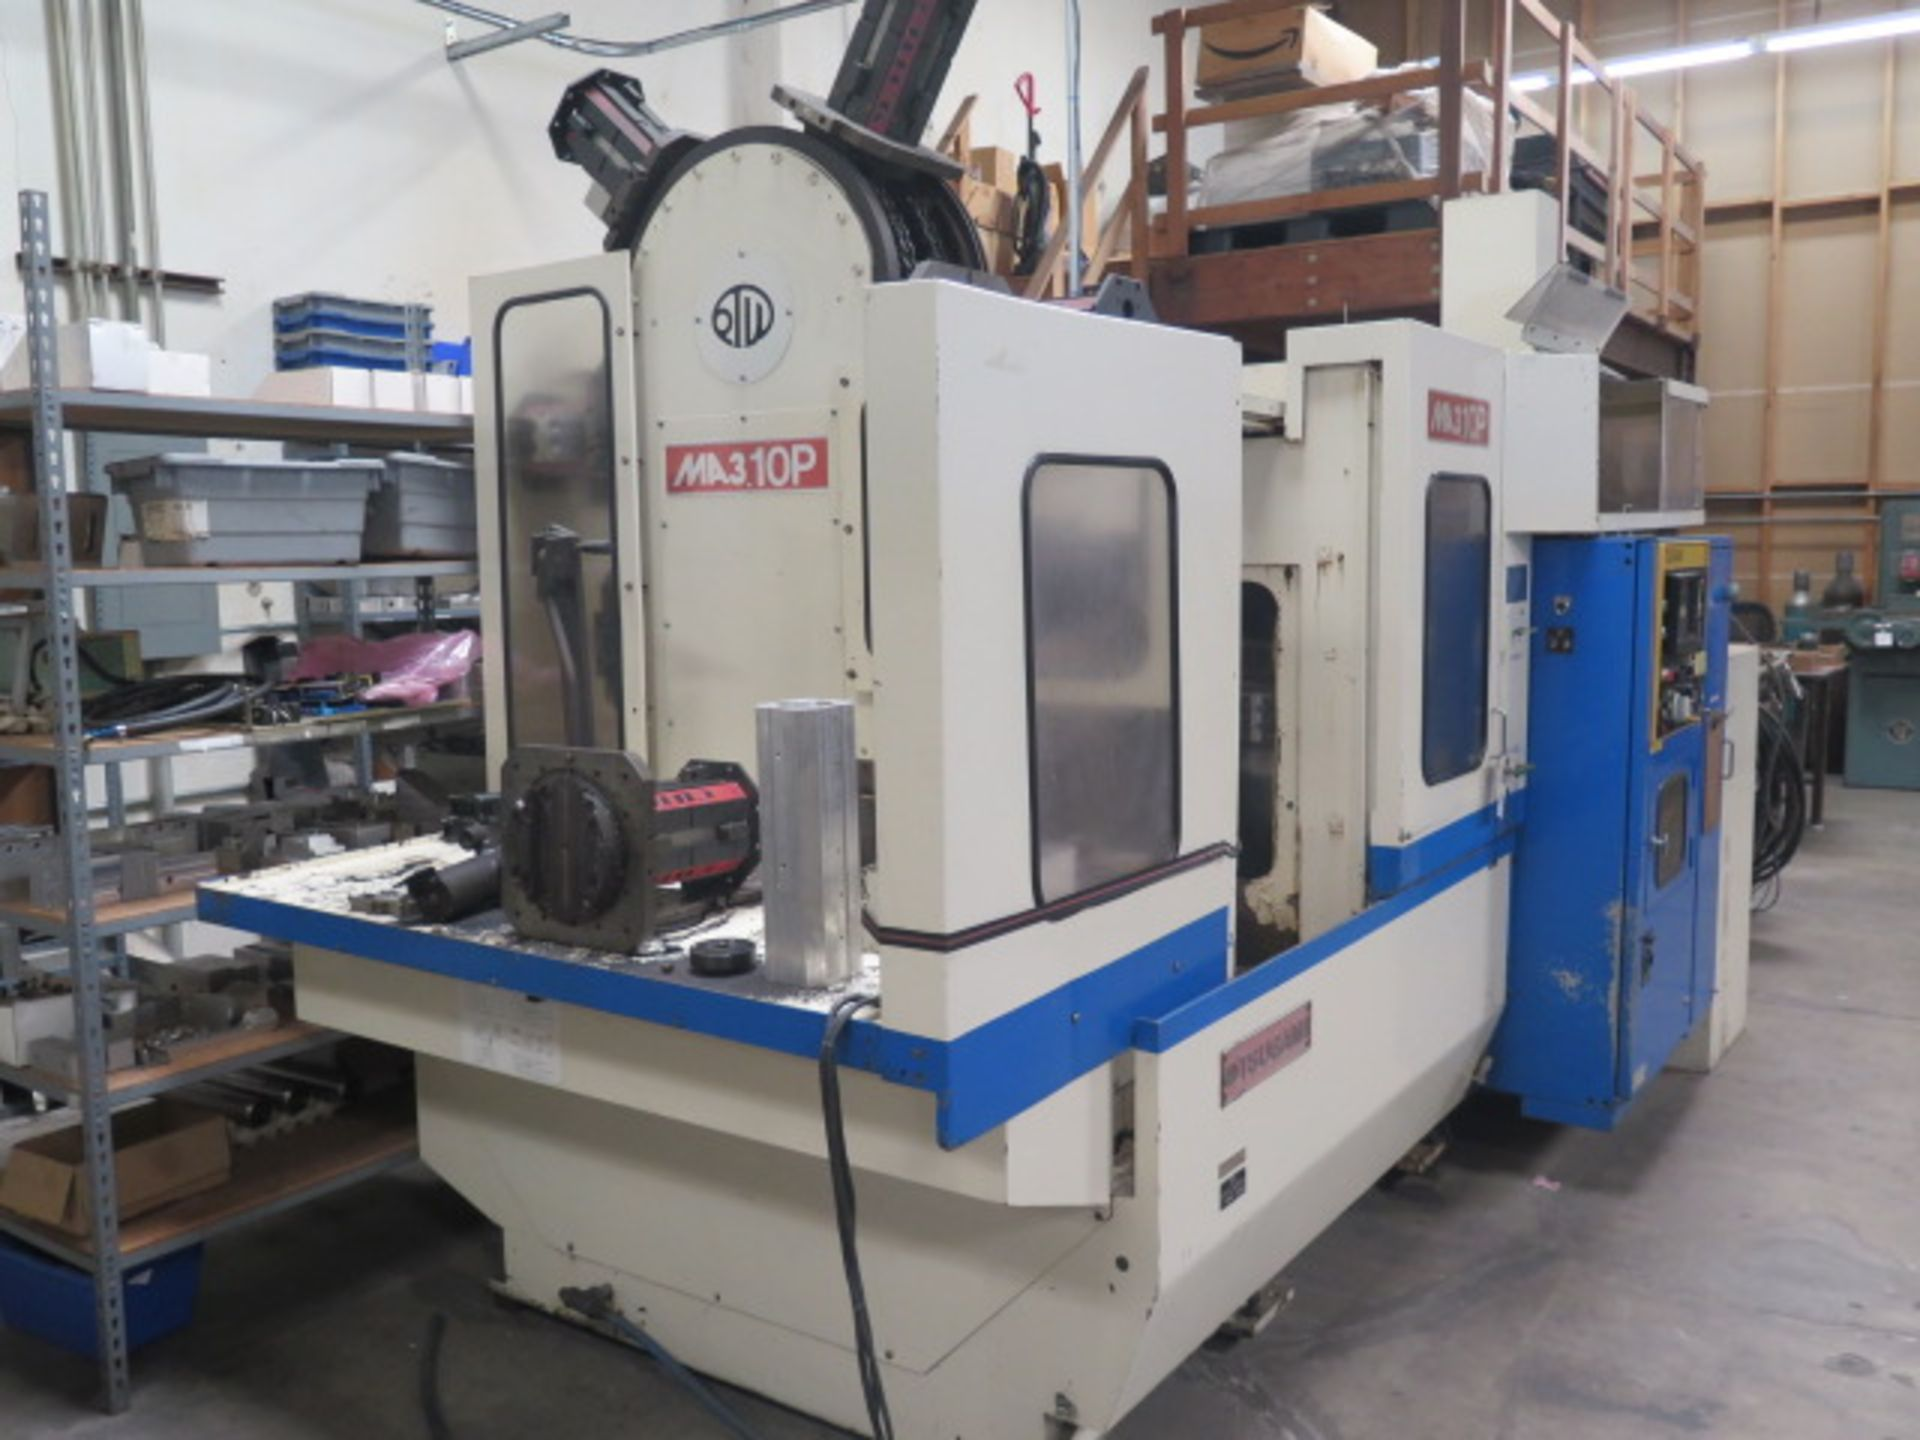 Tsugami MS3.10P Type MA3H 4-Axis 10-Pallet CNC HMC (HAS X-AXIS PROBLEM), SOLD AS IS - Image 2 of 20